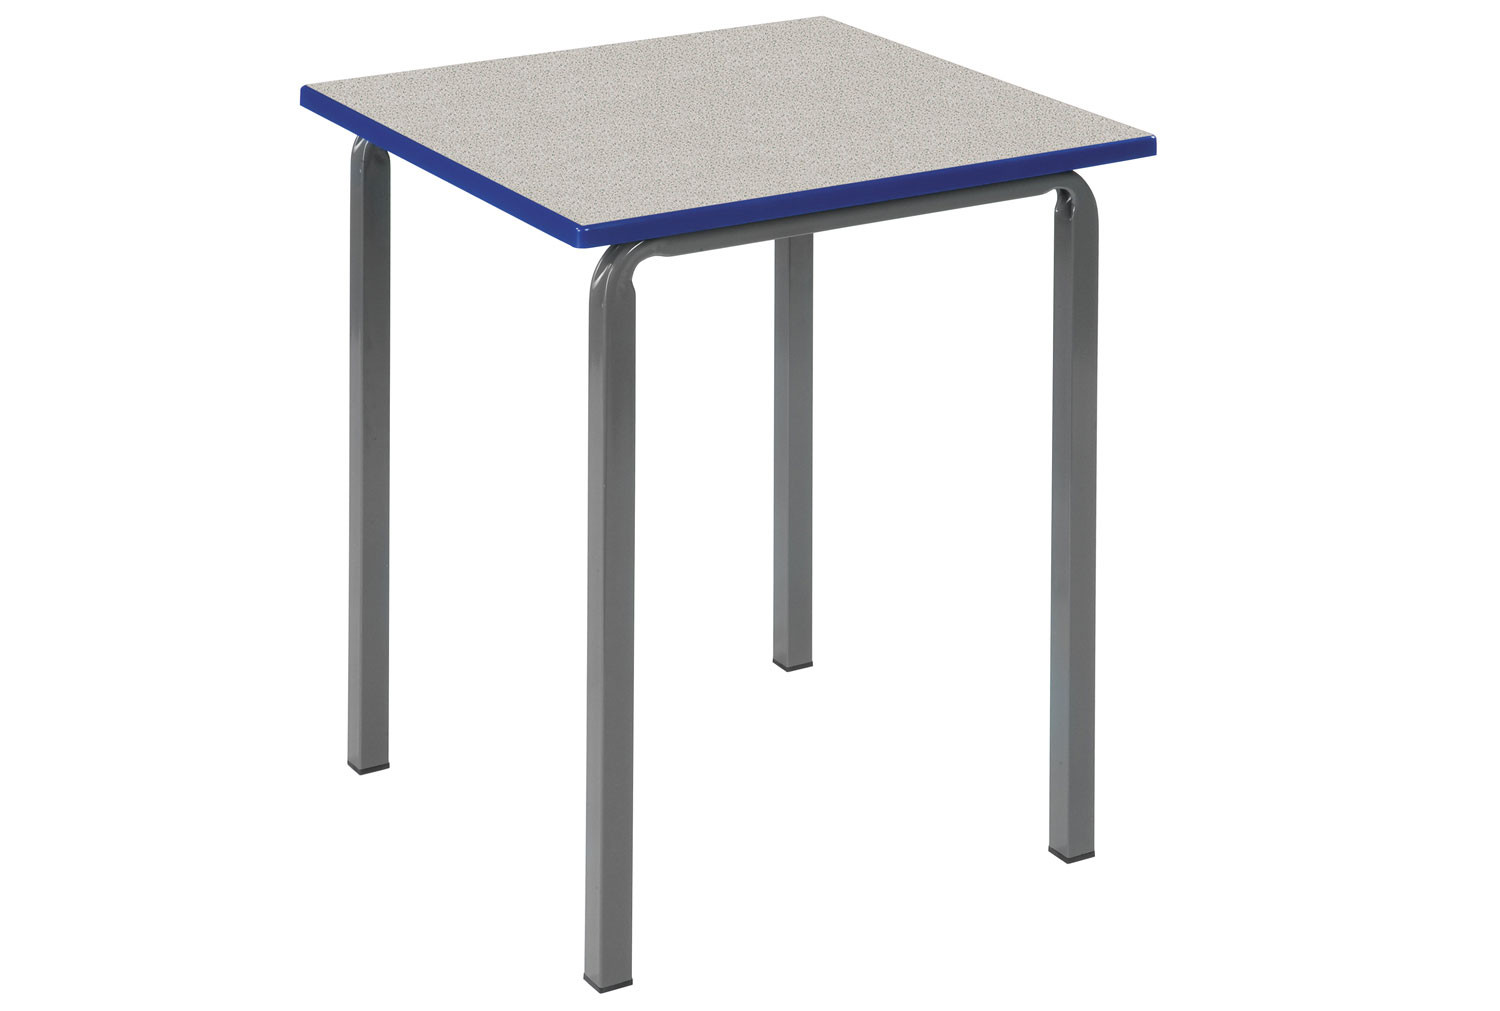 Reliance Square Classroom Tables 14+ Years